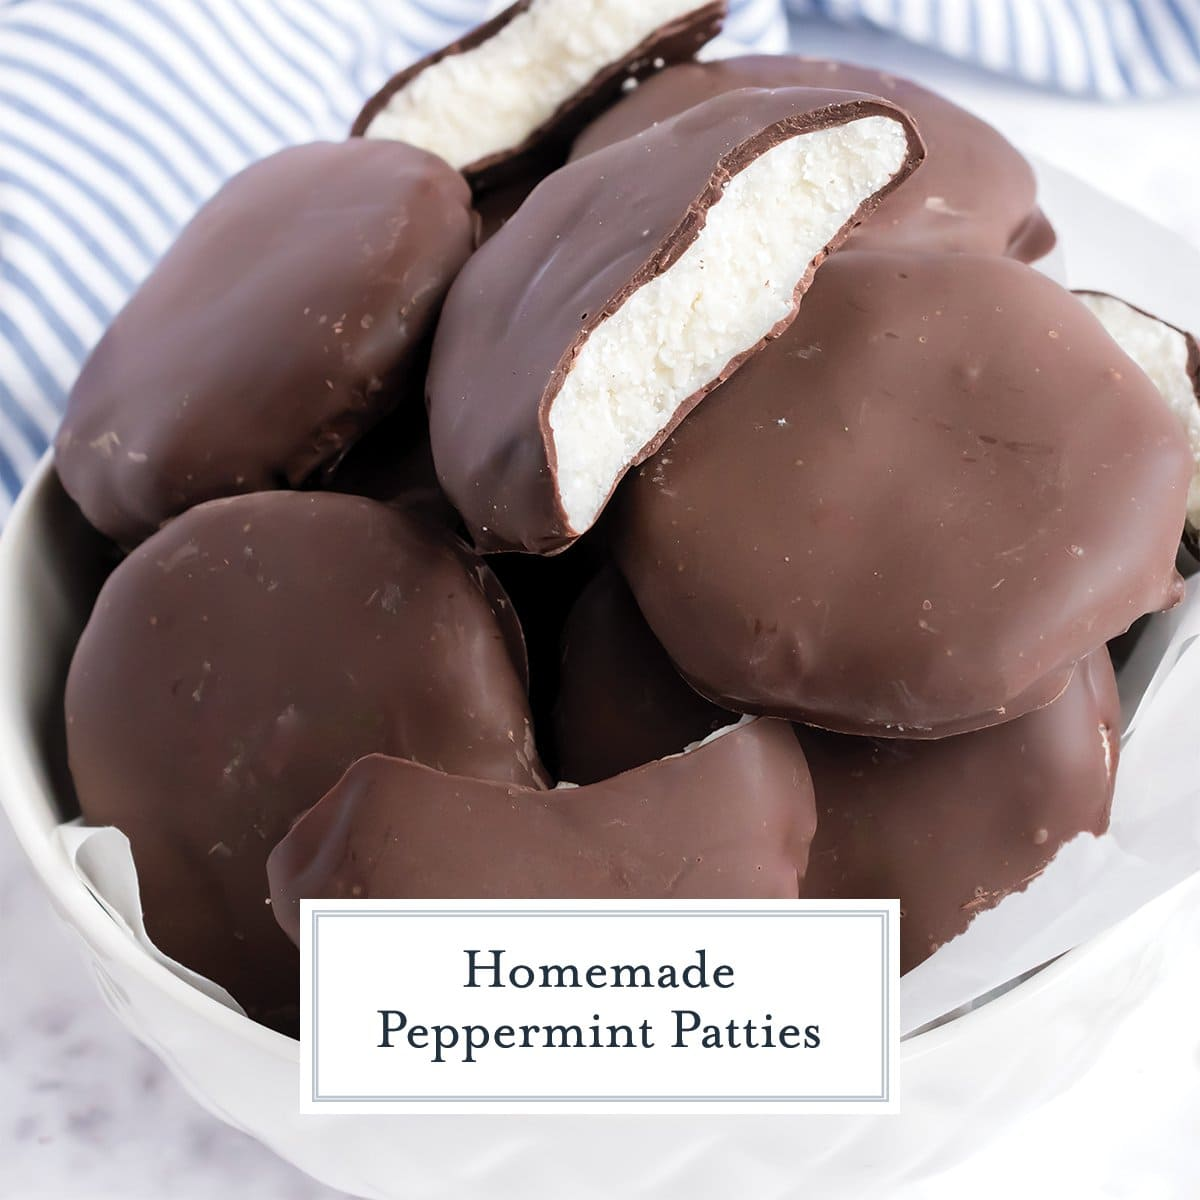 close up of peppermint patties in a bowl, one broken open